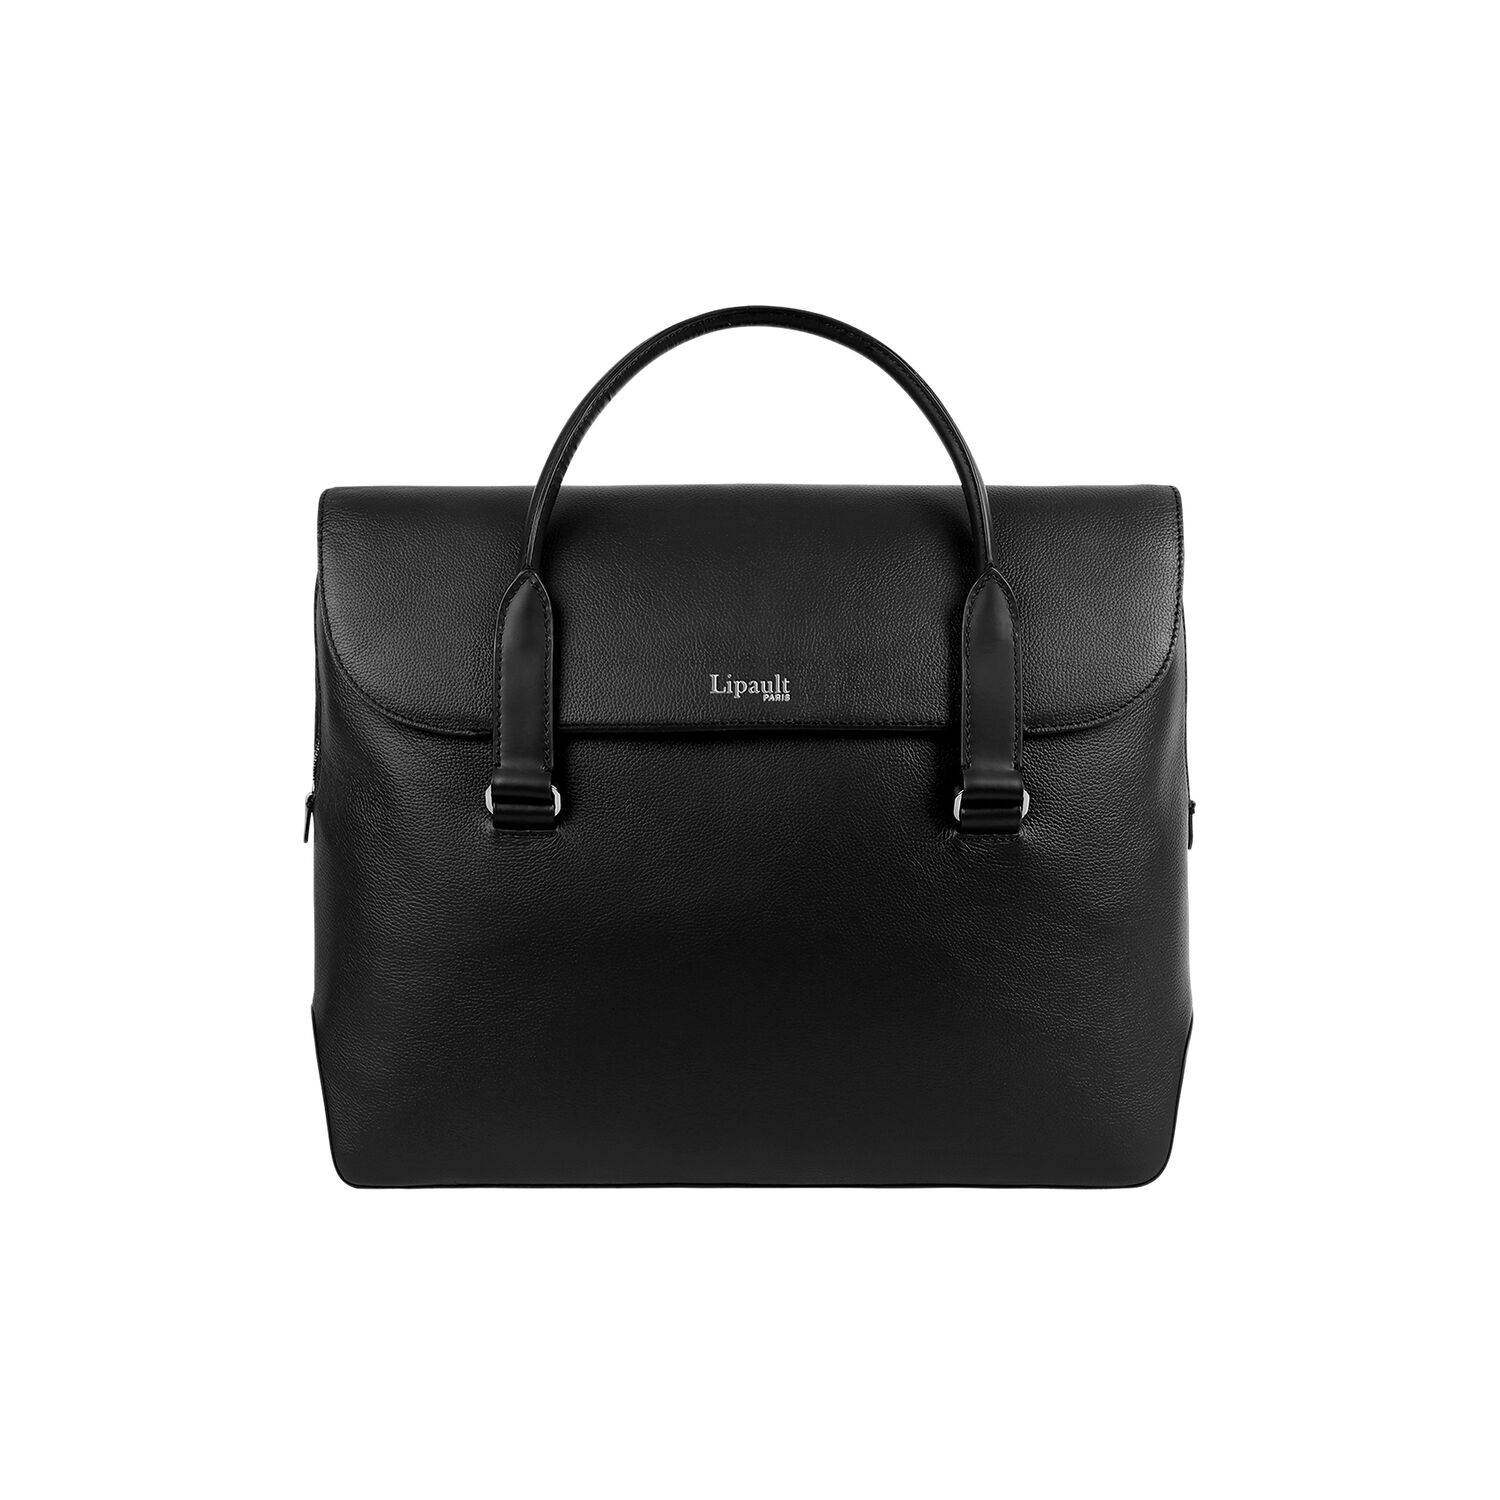 Lipault Plume Elegance Laptop Bailhandle in the color Black Leather.